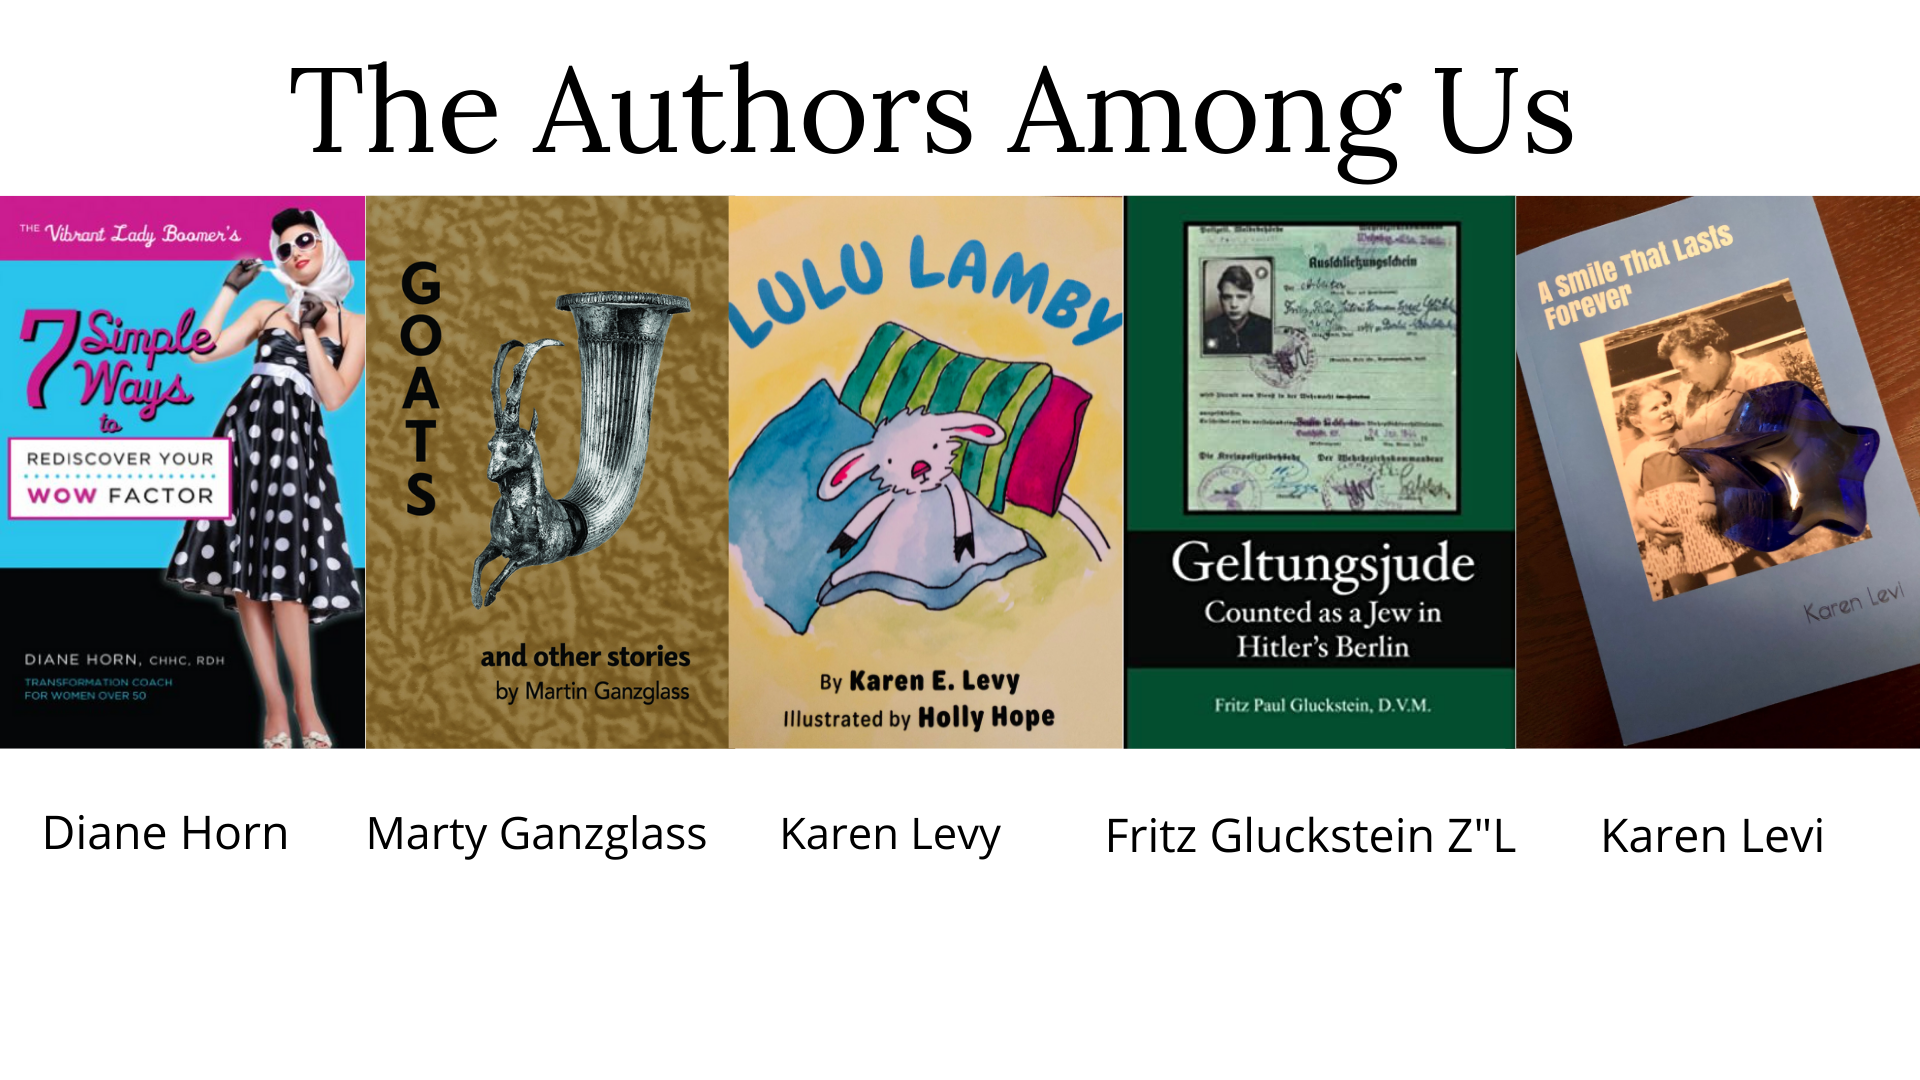 """<a href=""""https://www.bethesdajewish.org/authors""""                                     target=""""_blank"""">                                                                 <span class=""""slider_title"""">                                     The Authors Among Us                                </span>                                                                 </a>                                                                                                                                                                                       <span class=""""slider_description"""">Show your support for our BJC authors! Congratulations to Karen Levi, Diane Horn, Marty Ganzglass, Karen Levy and the late Fritz Gluckstein. Click to learn more and purchase copies.</span>"""